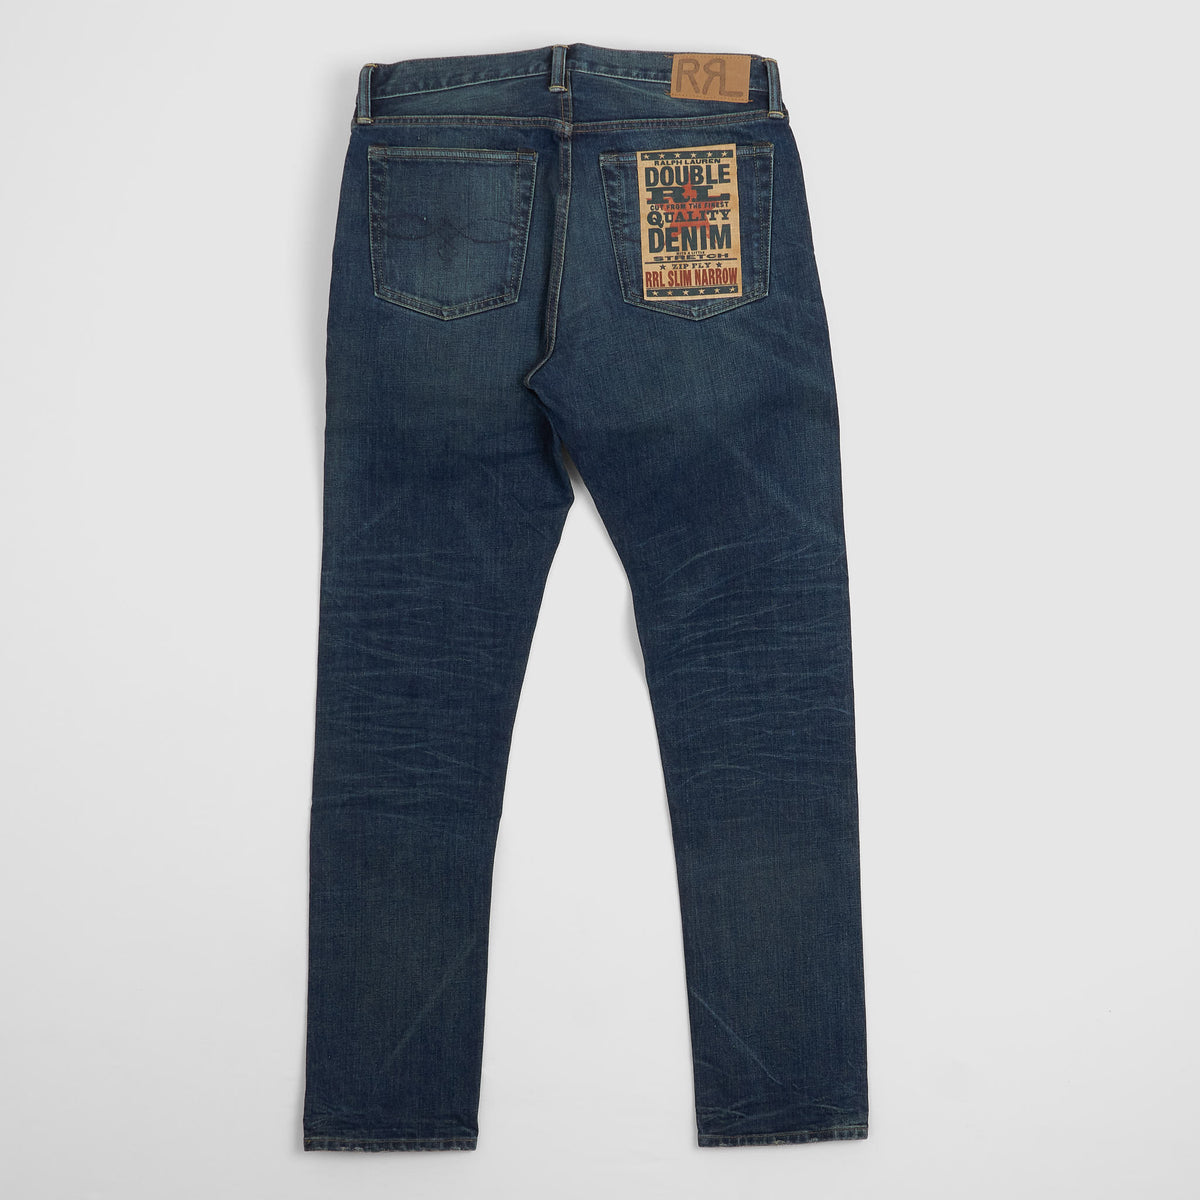 Double RL Slim Narrow Denim Jeans (Stone Washed)